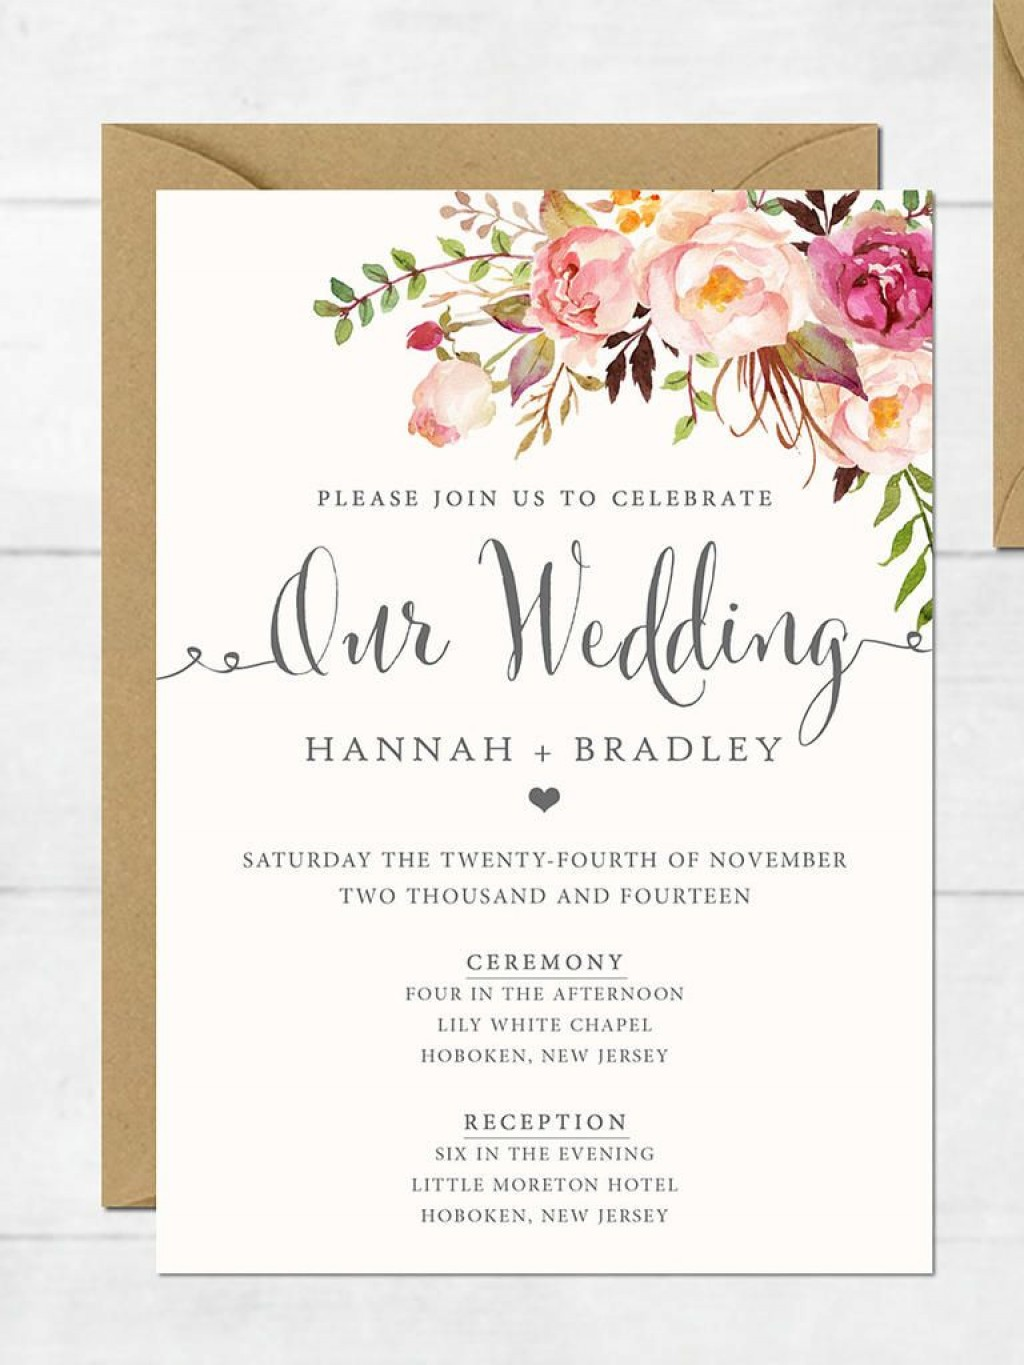 002 Unforgettable Printable Wedding Invitation Template High Definition  Free For Microsoft Word VintageLarge